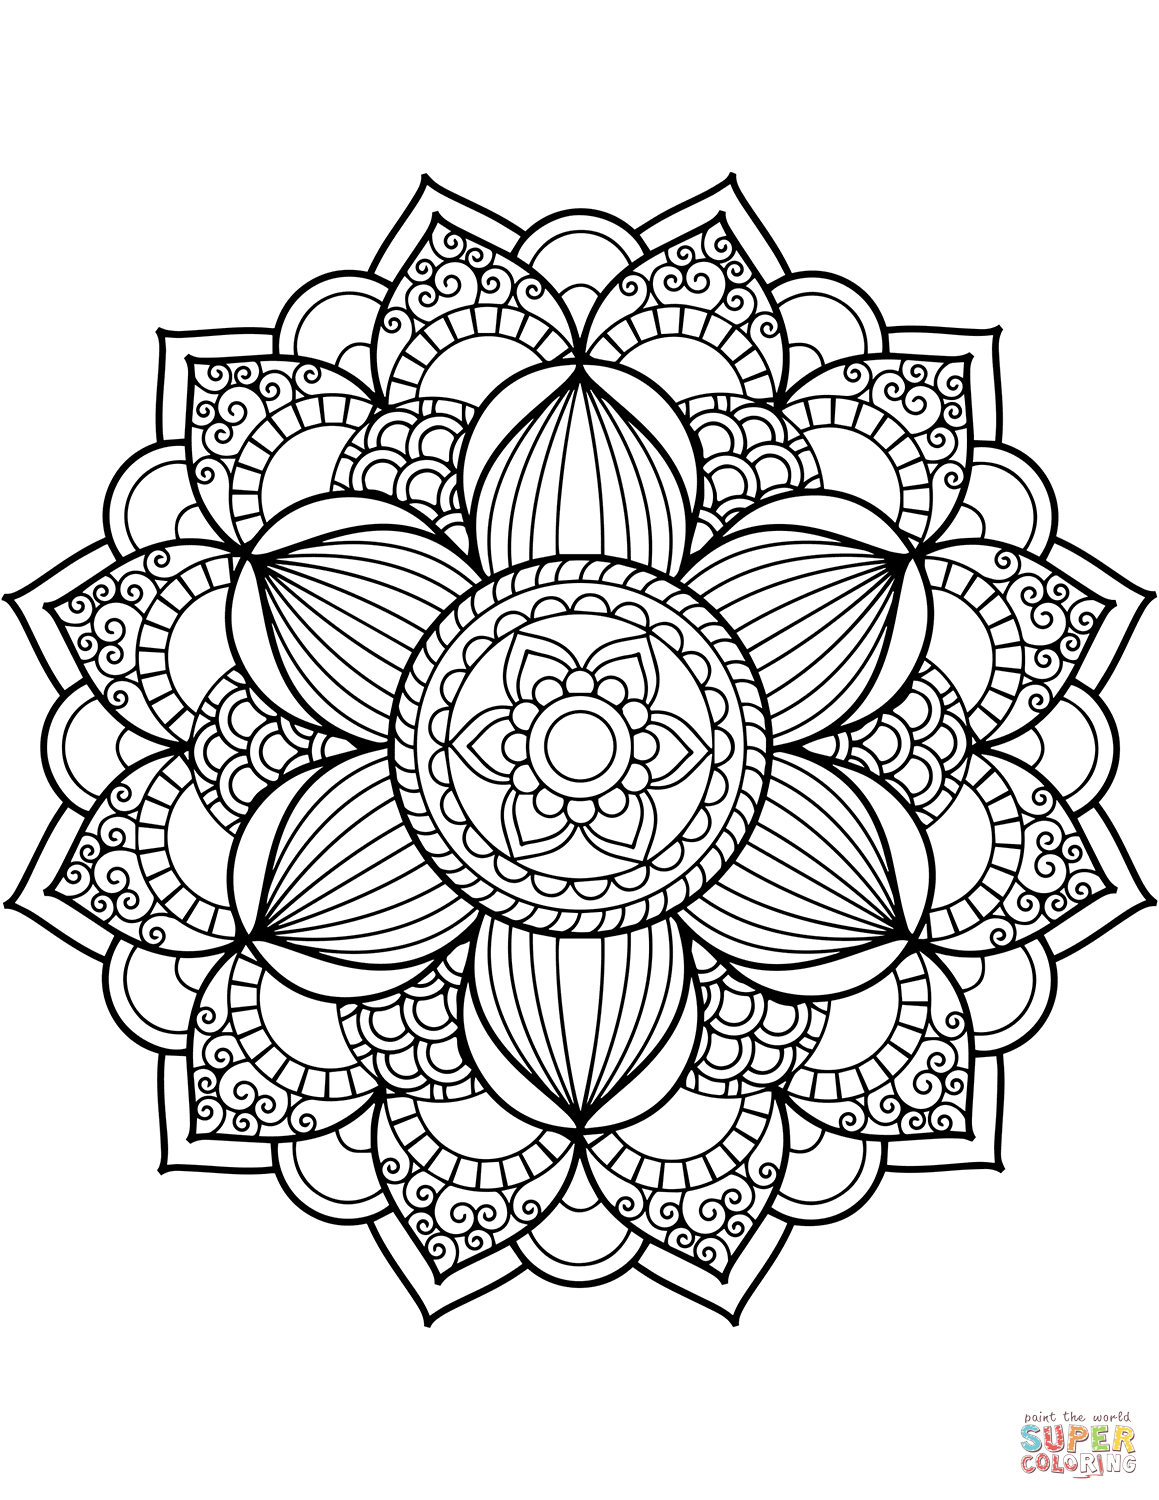 mandala pictures to color coloring to calm volume one mandalas to color mandala pictures